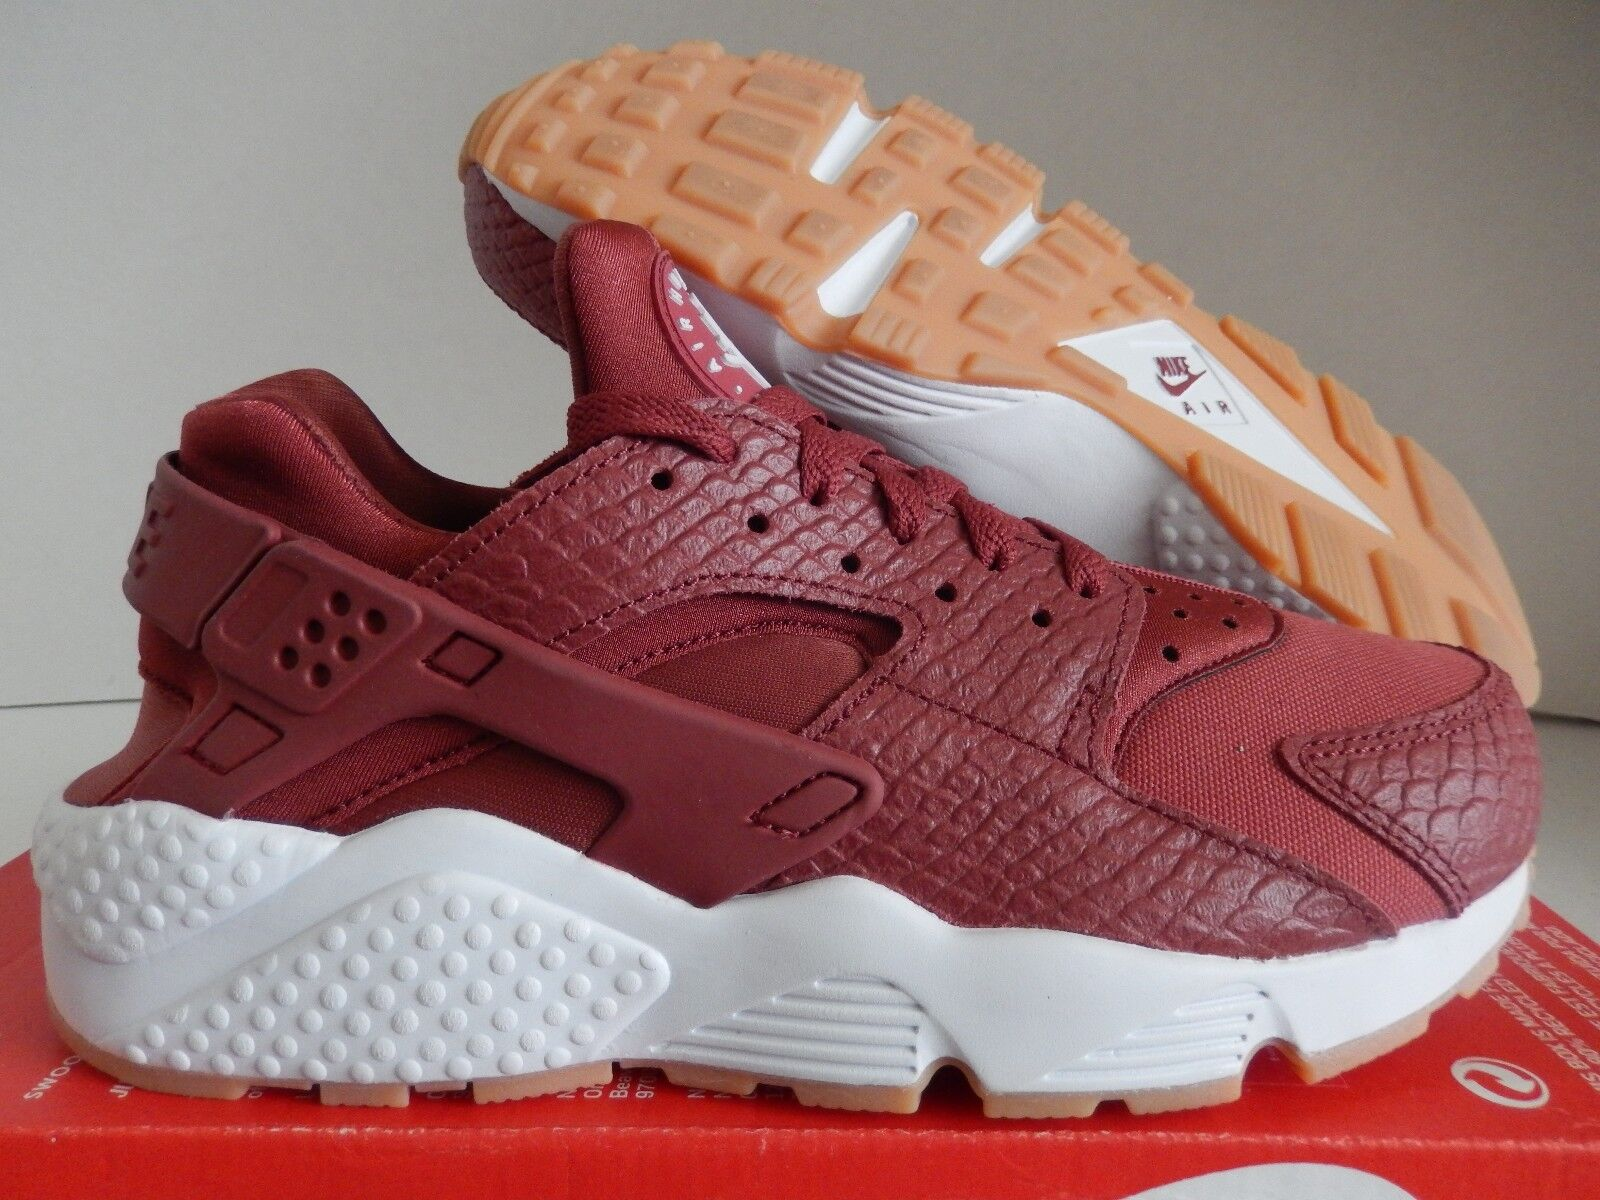 WMNS NIKE AIR HUARACHE RUN SE CEDAR-GUM YELLOW-WHITE SZ 8 [859429-600]